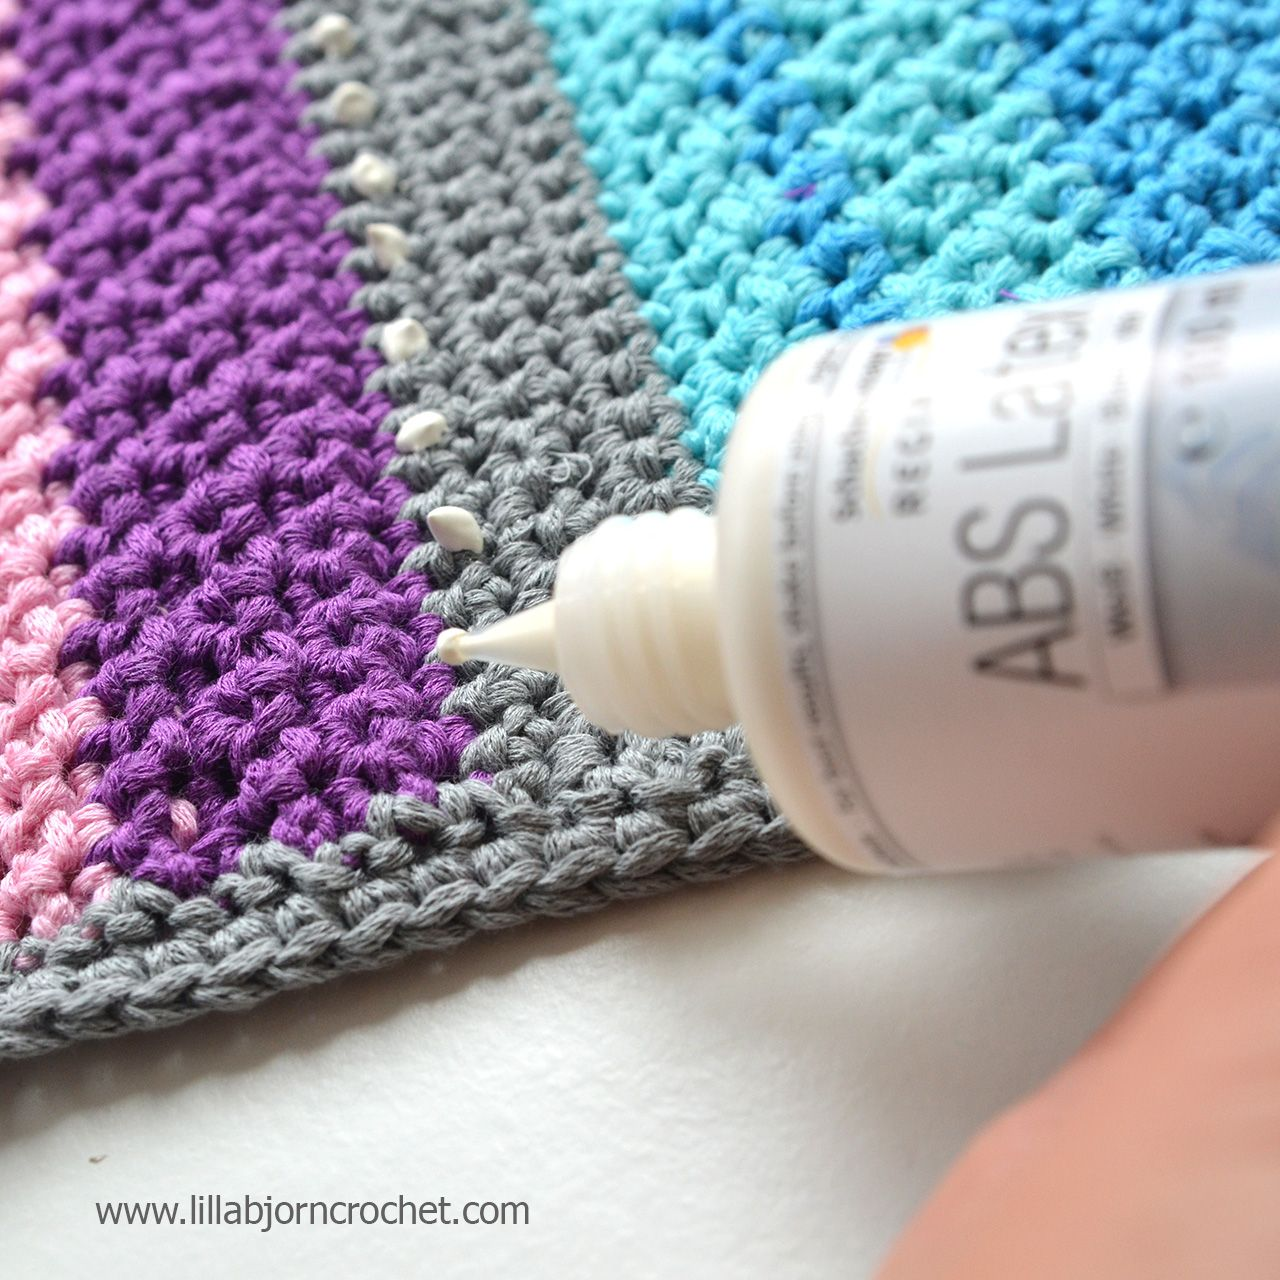 Crochet rugs are trendy but without anti-slippery materials they can be  dangerous for use. Read about 3 easy ways to make your rug non slip!